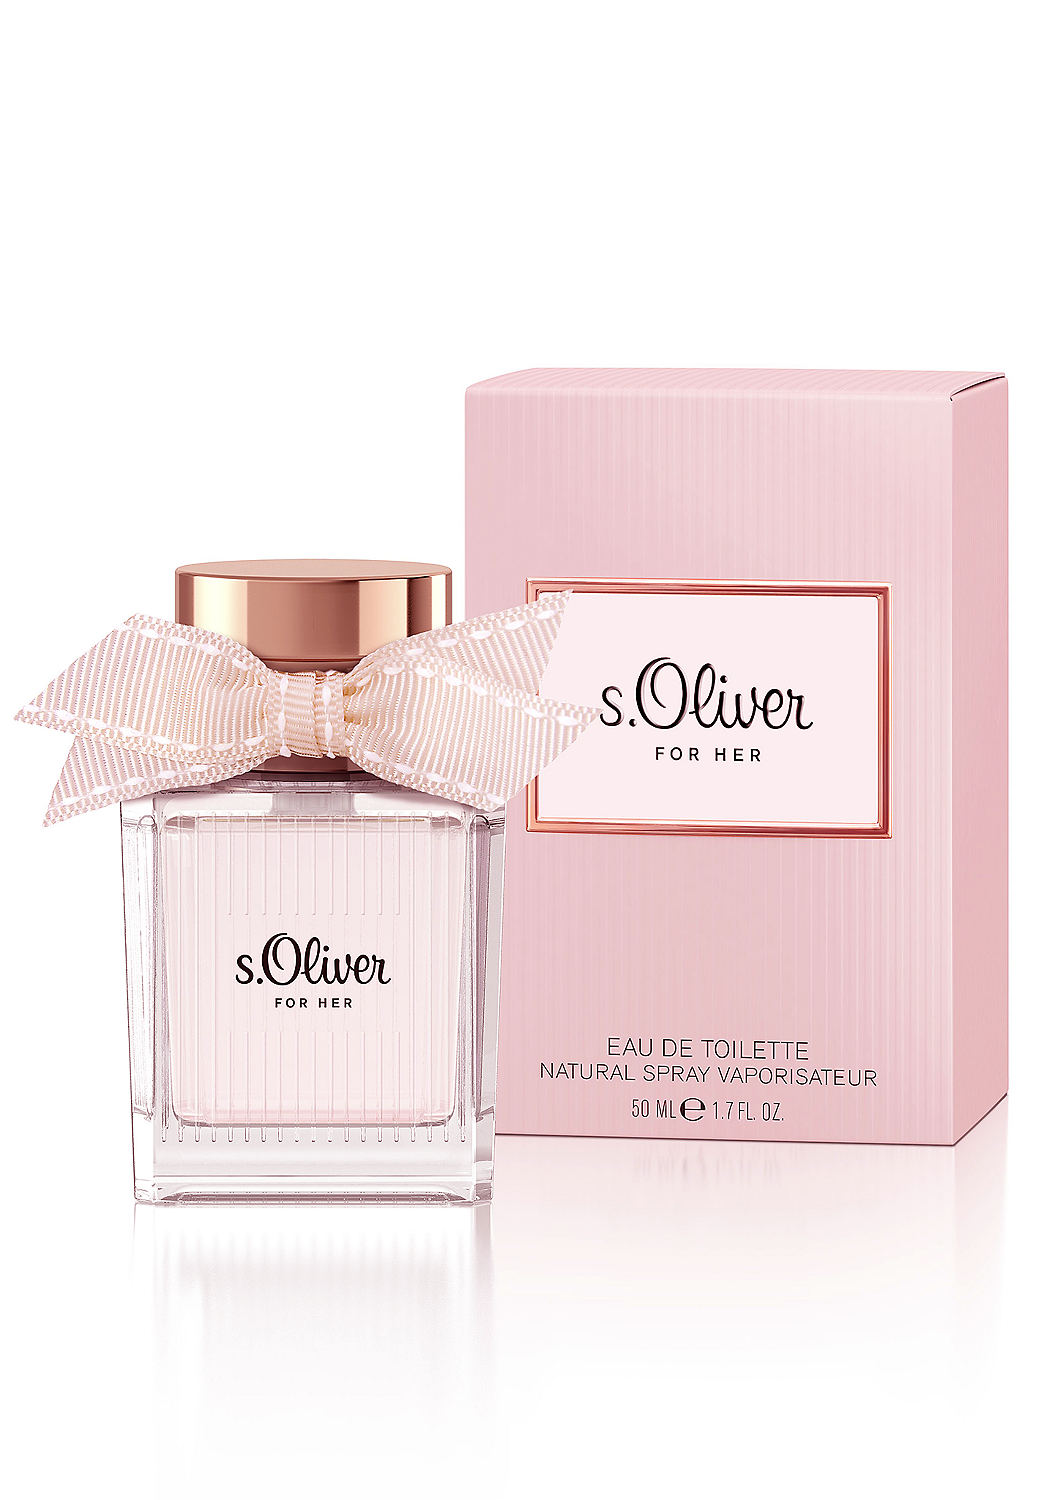 s.Oliver For Her E.d.T. 50ml kaufen | s.Oliver Shop